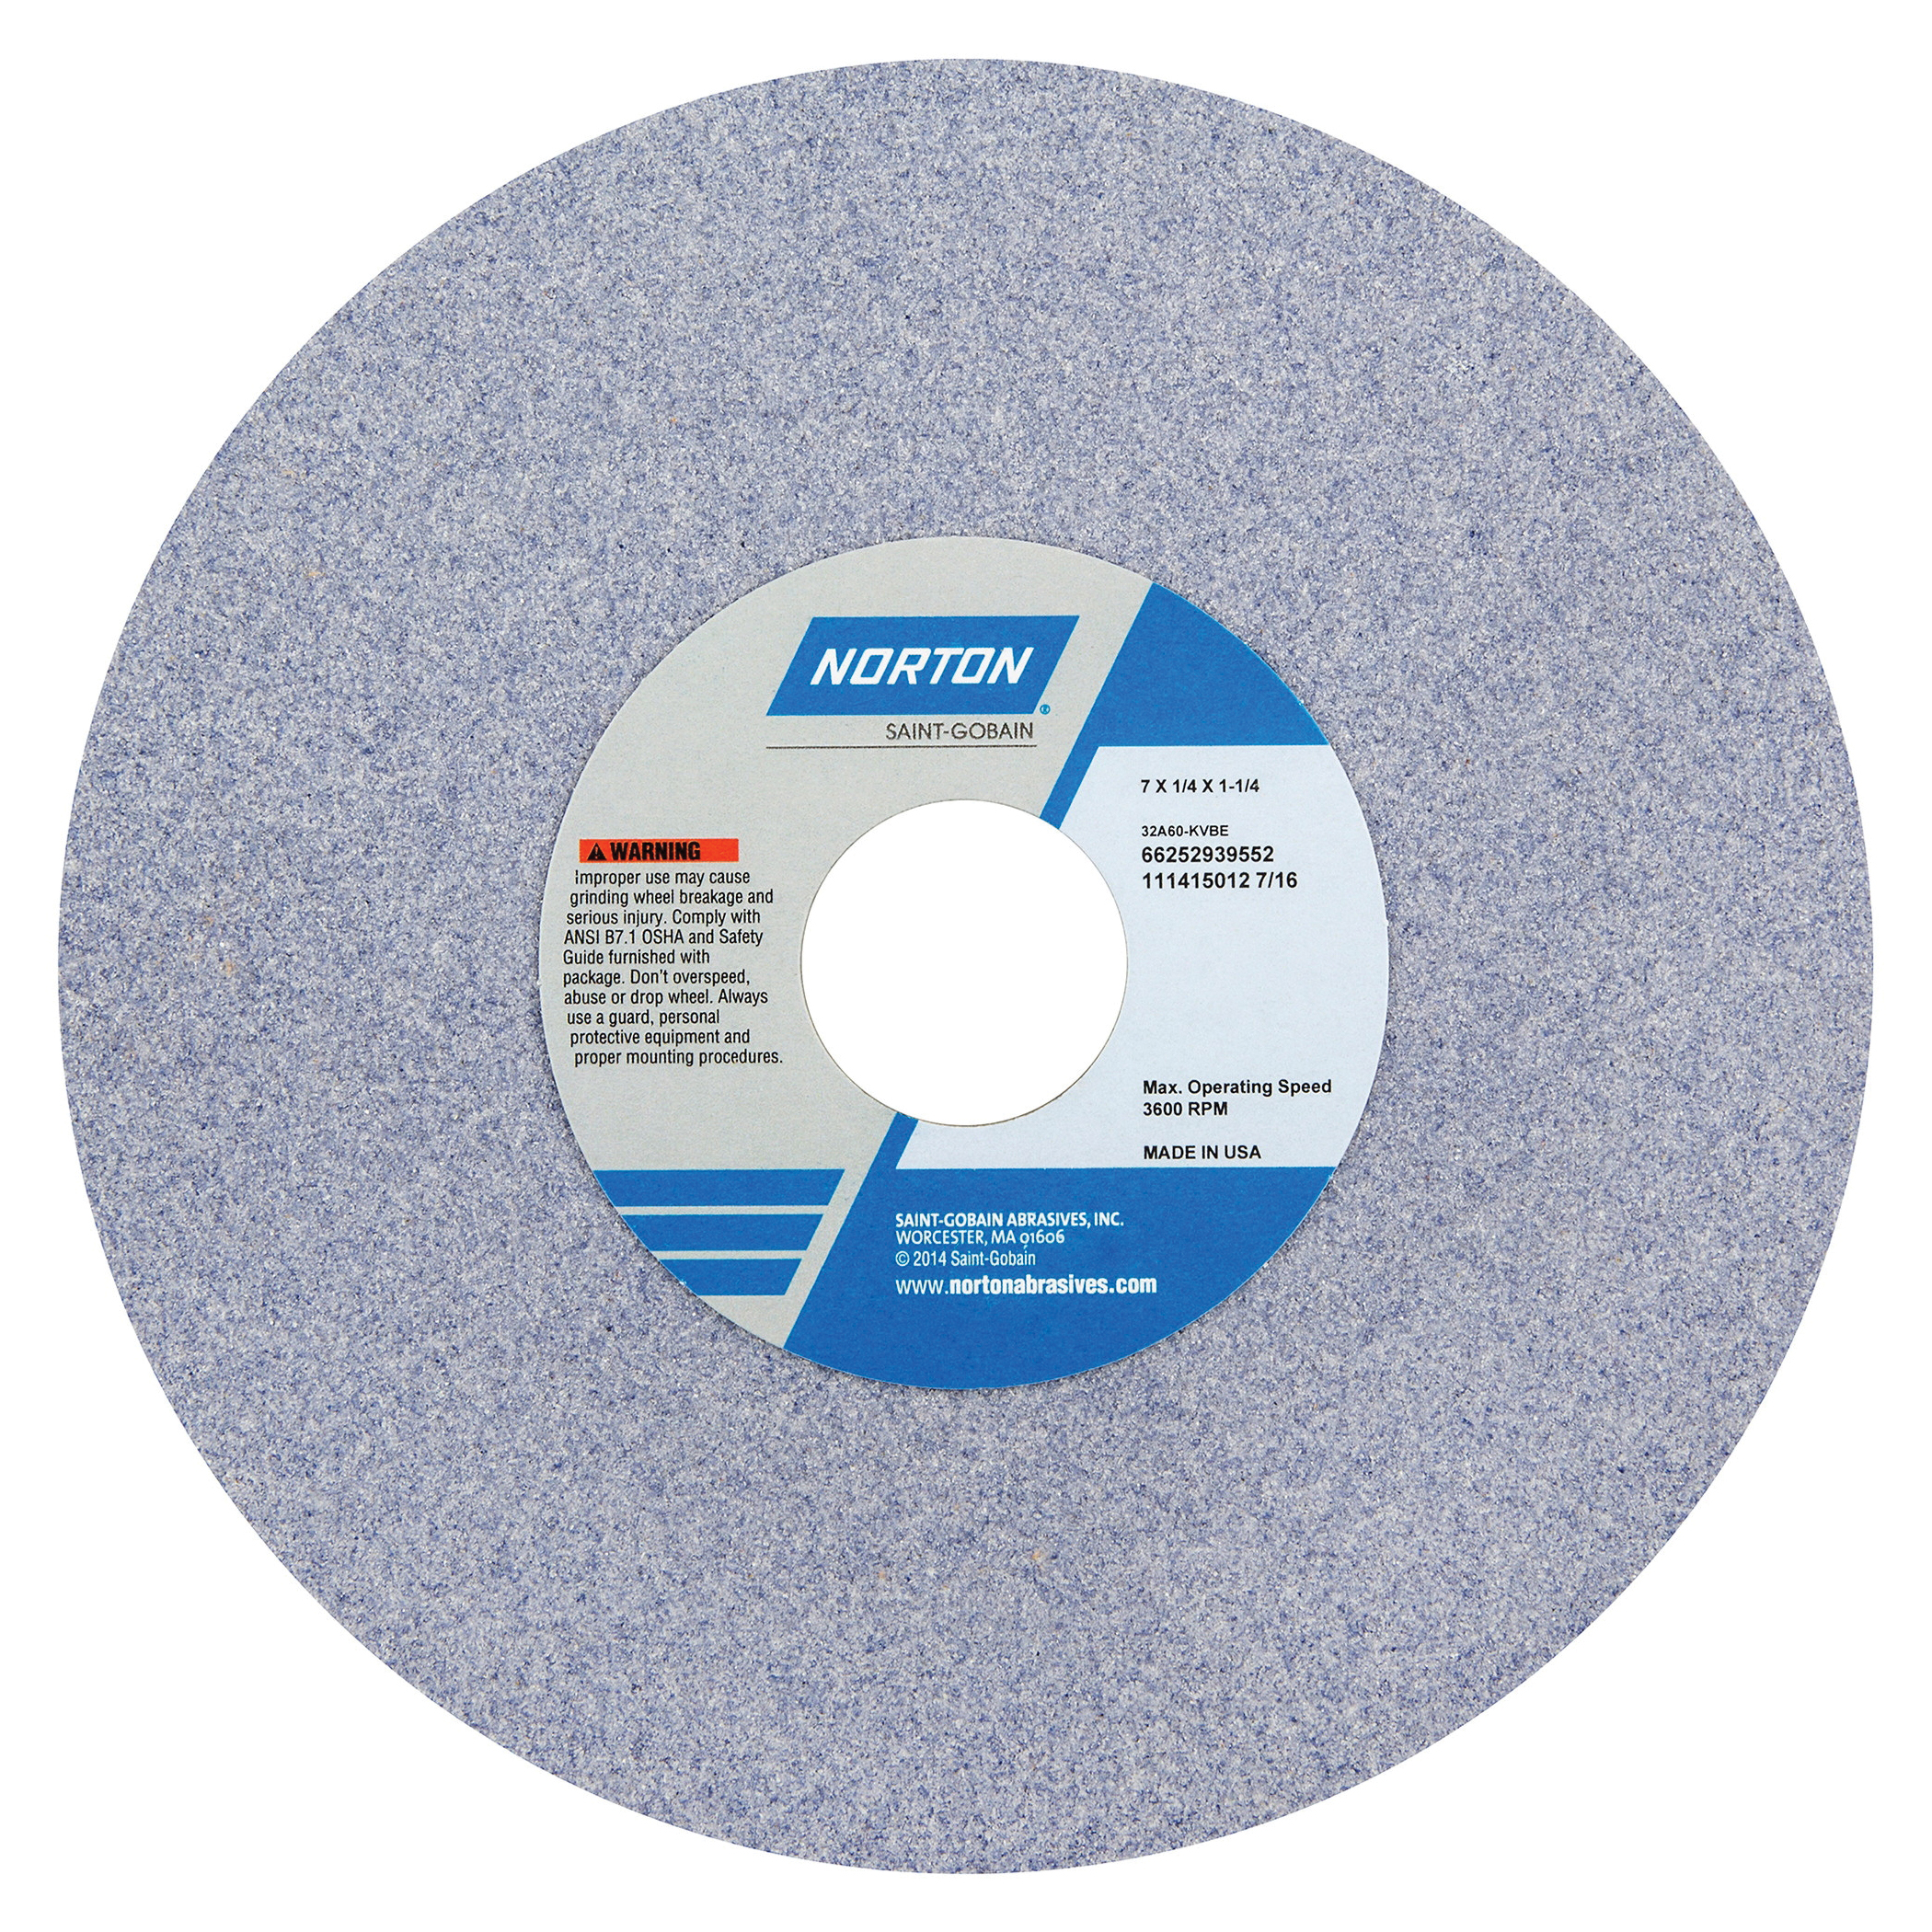 Norton® 66252939544 32A Straight Toolroom Wheel, 7 in Dia x 1/4 in THK, 1-1/4 in Center Hole, 46 Grit, Aluminum Oxide Abrasive